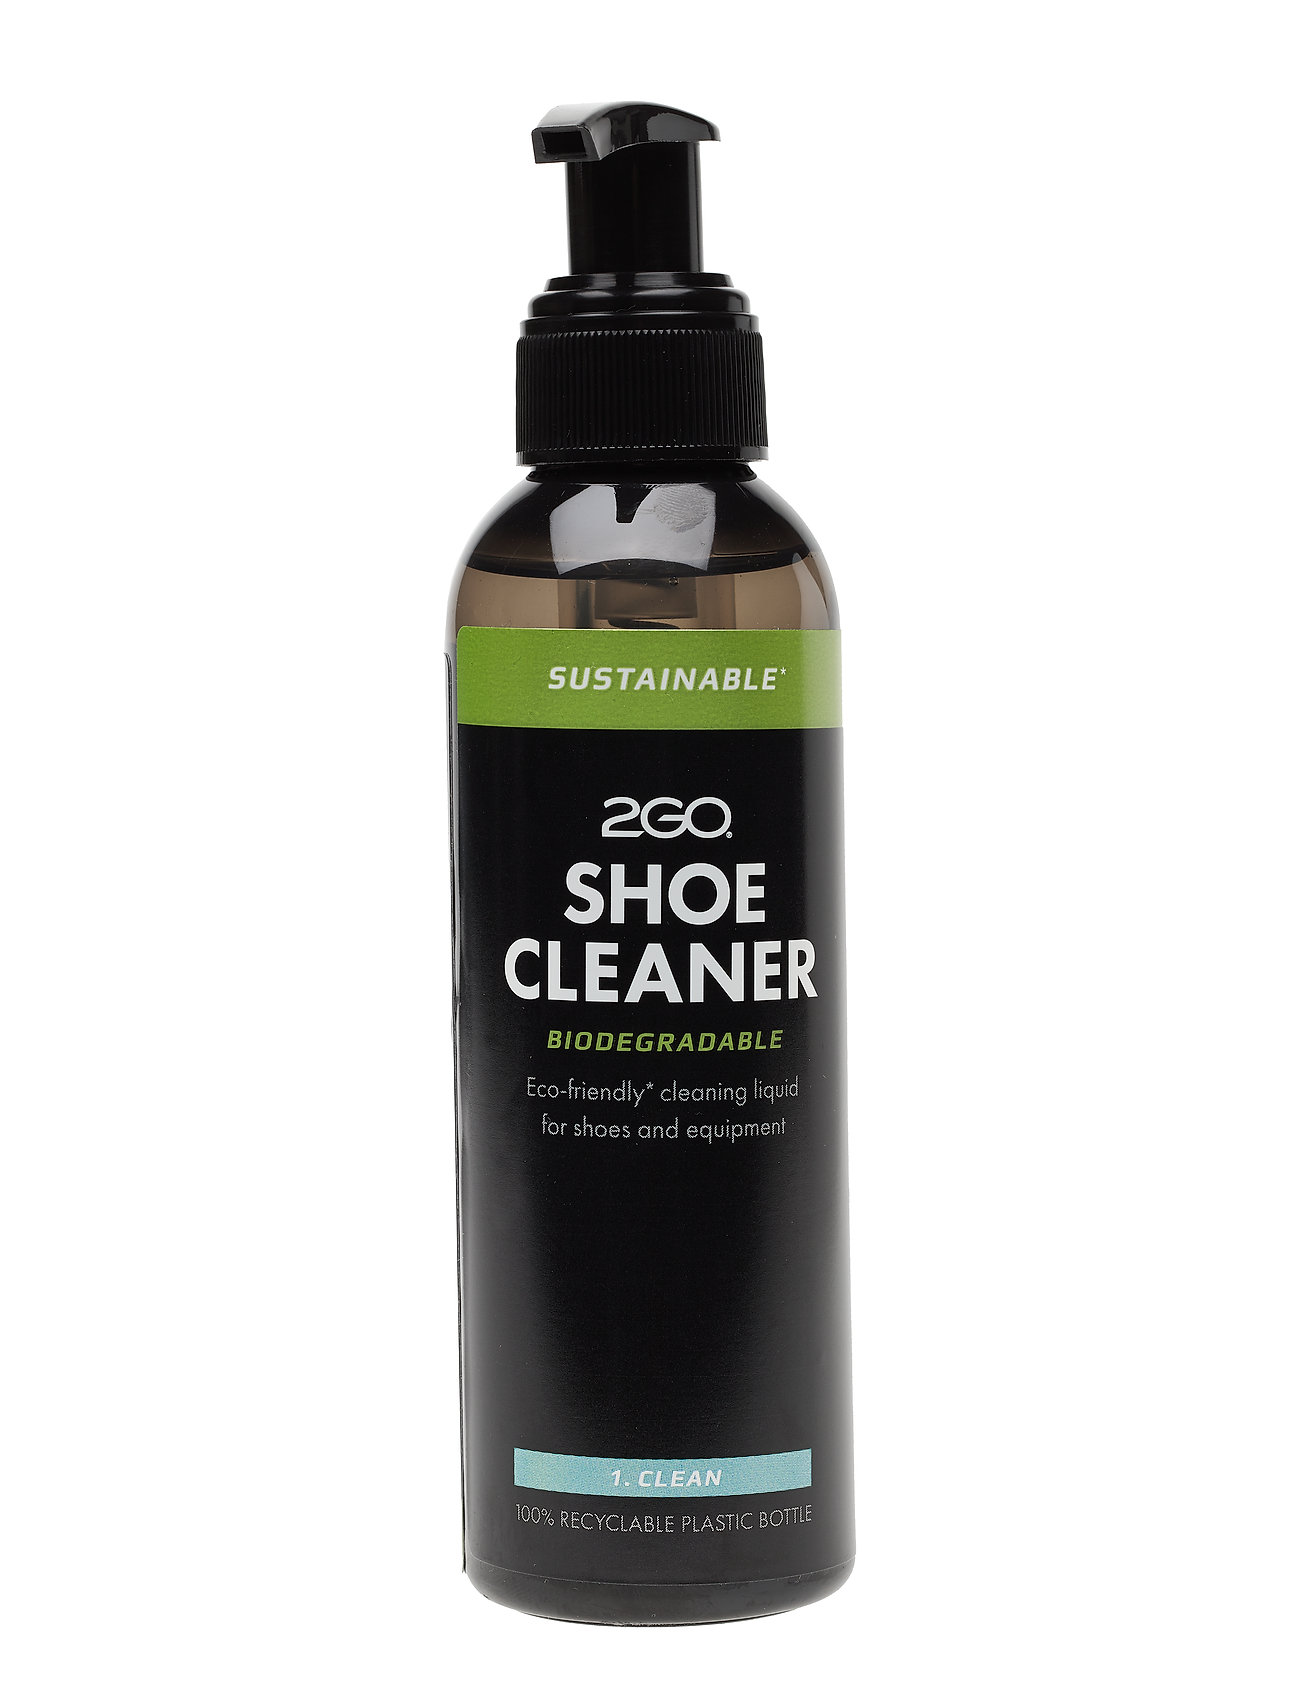 Image of 2go Sustainable Shoe Cleaner Skopleje 2GO (3410974199)